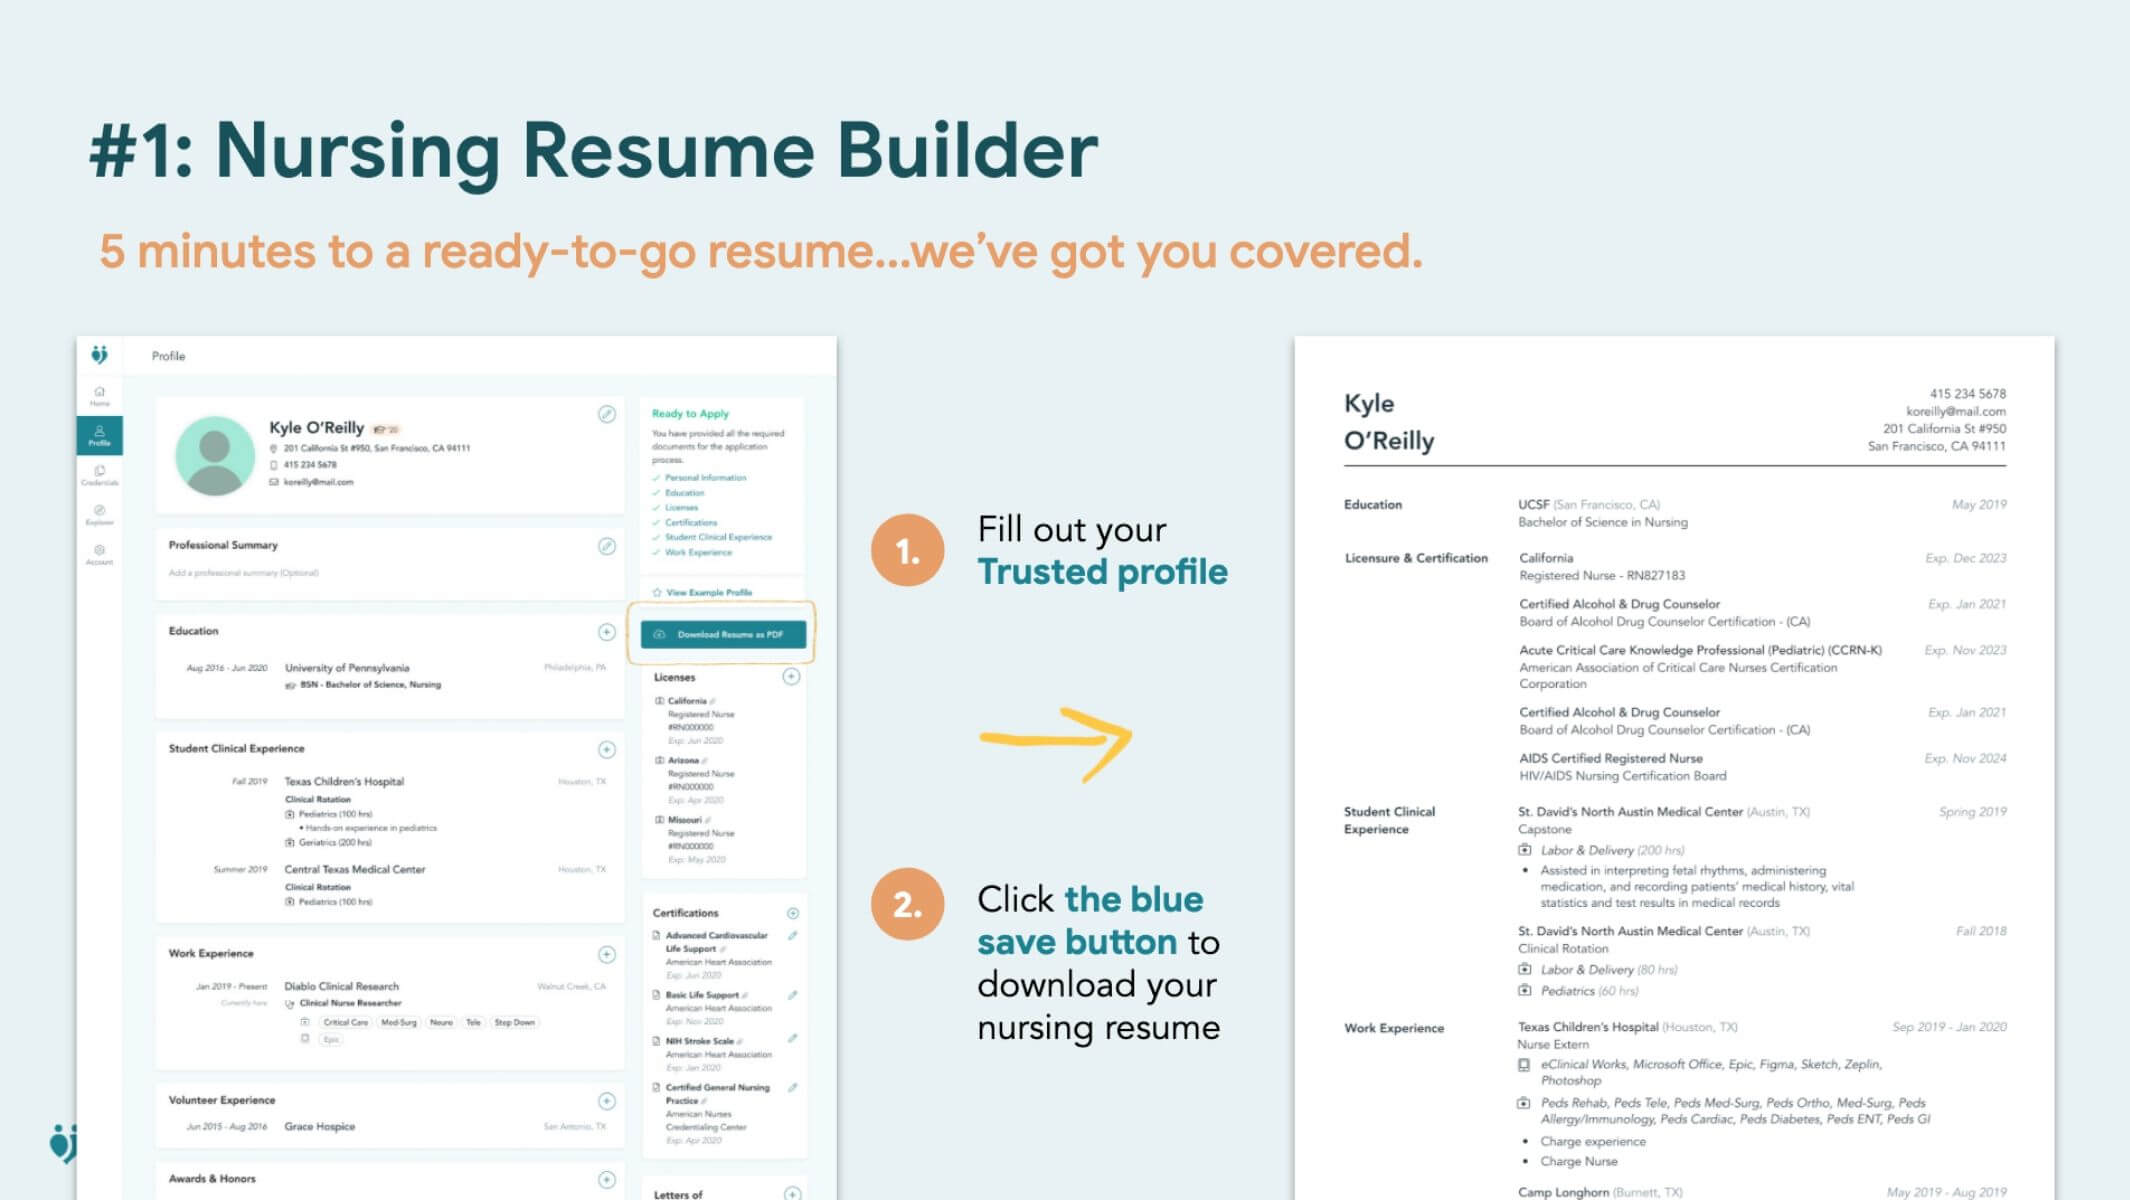 visual example of the nurse resume building on the trusted health platform fill out your profile and download your resume